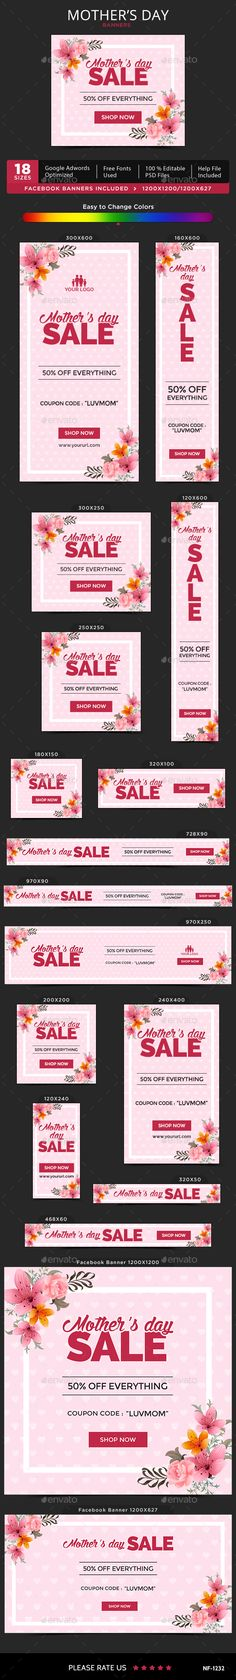 Mother's Day Banners — Photoshop PSD #coupon #google adwords • Available here → https://graphicriver.net/item/mothers-day-banners/15712779?ref=pxcr